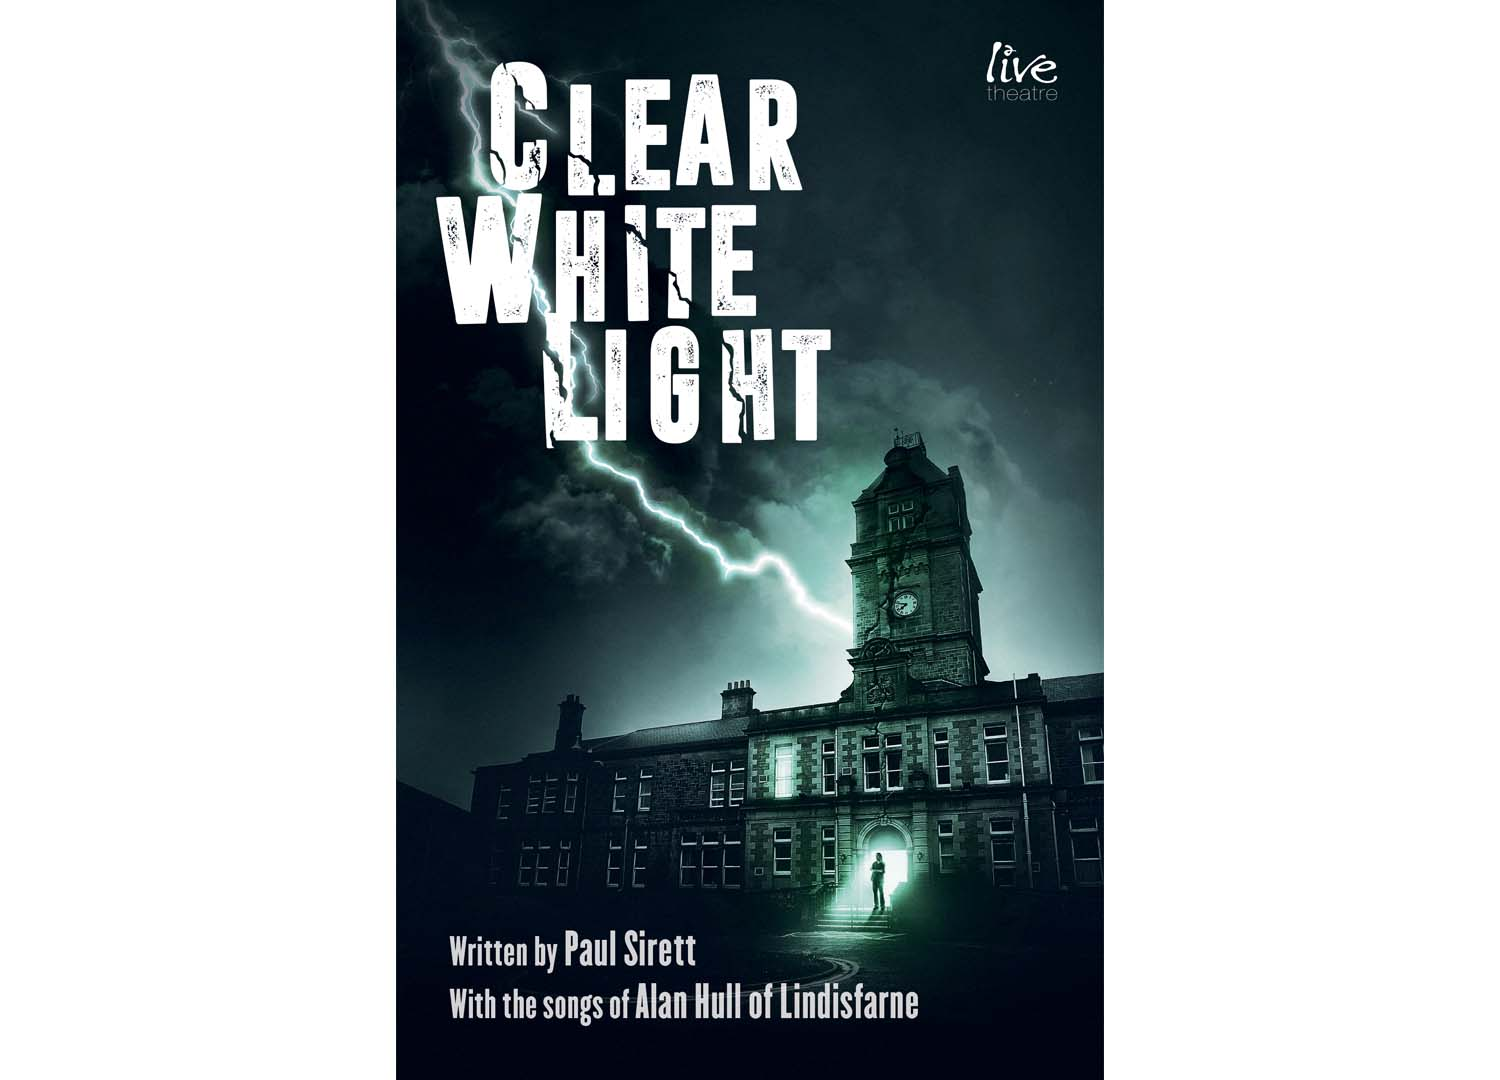 Picture of front cover of Clear White Light playtext